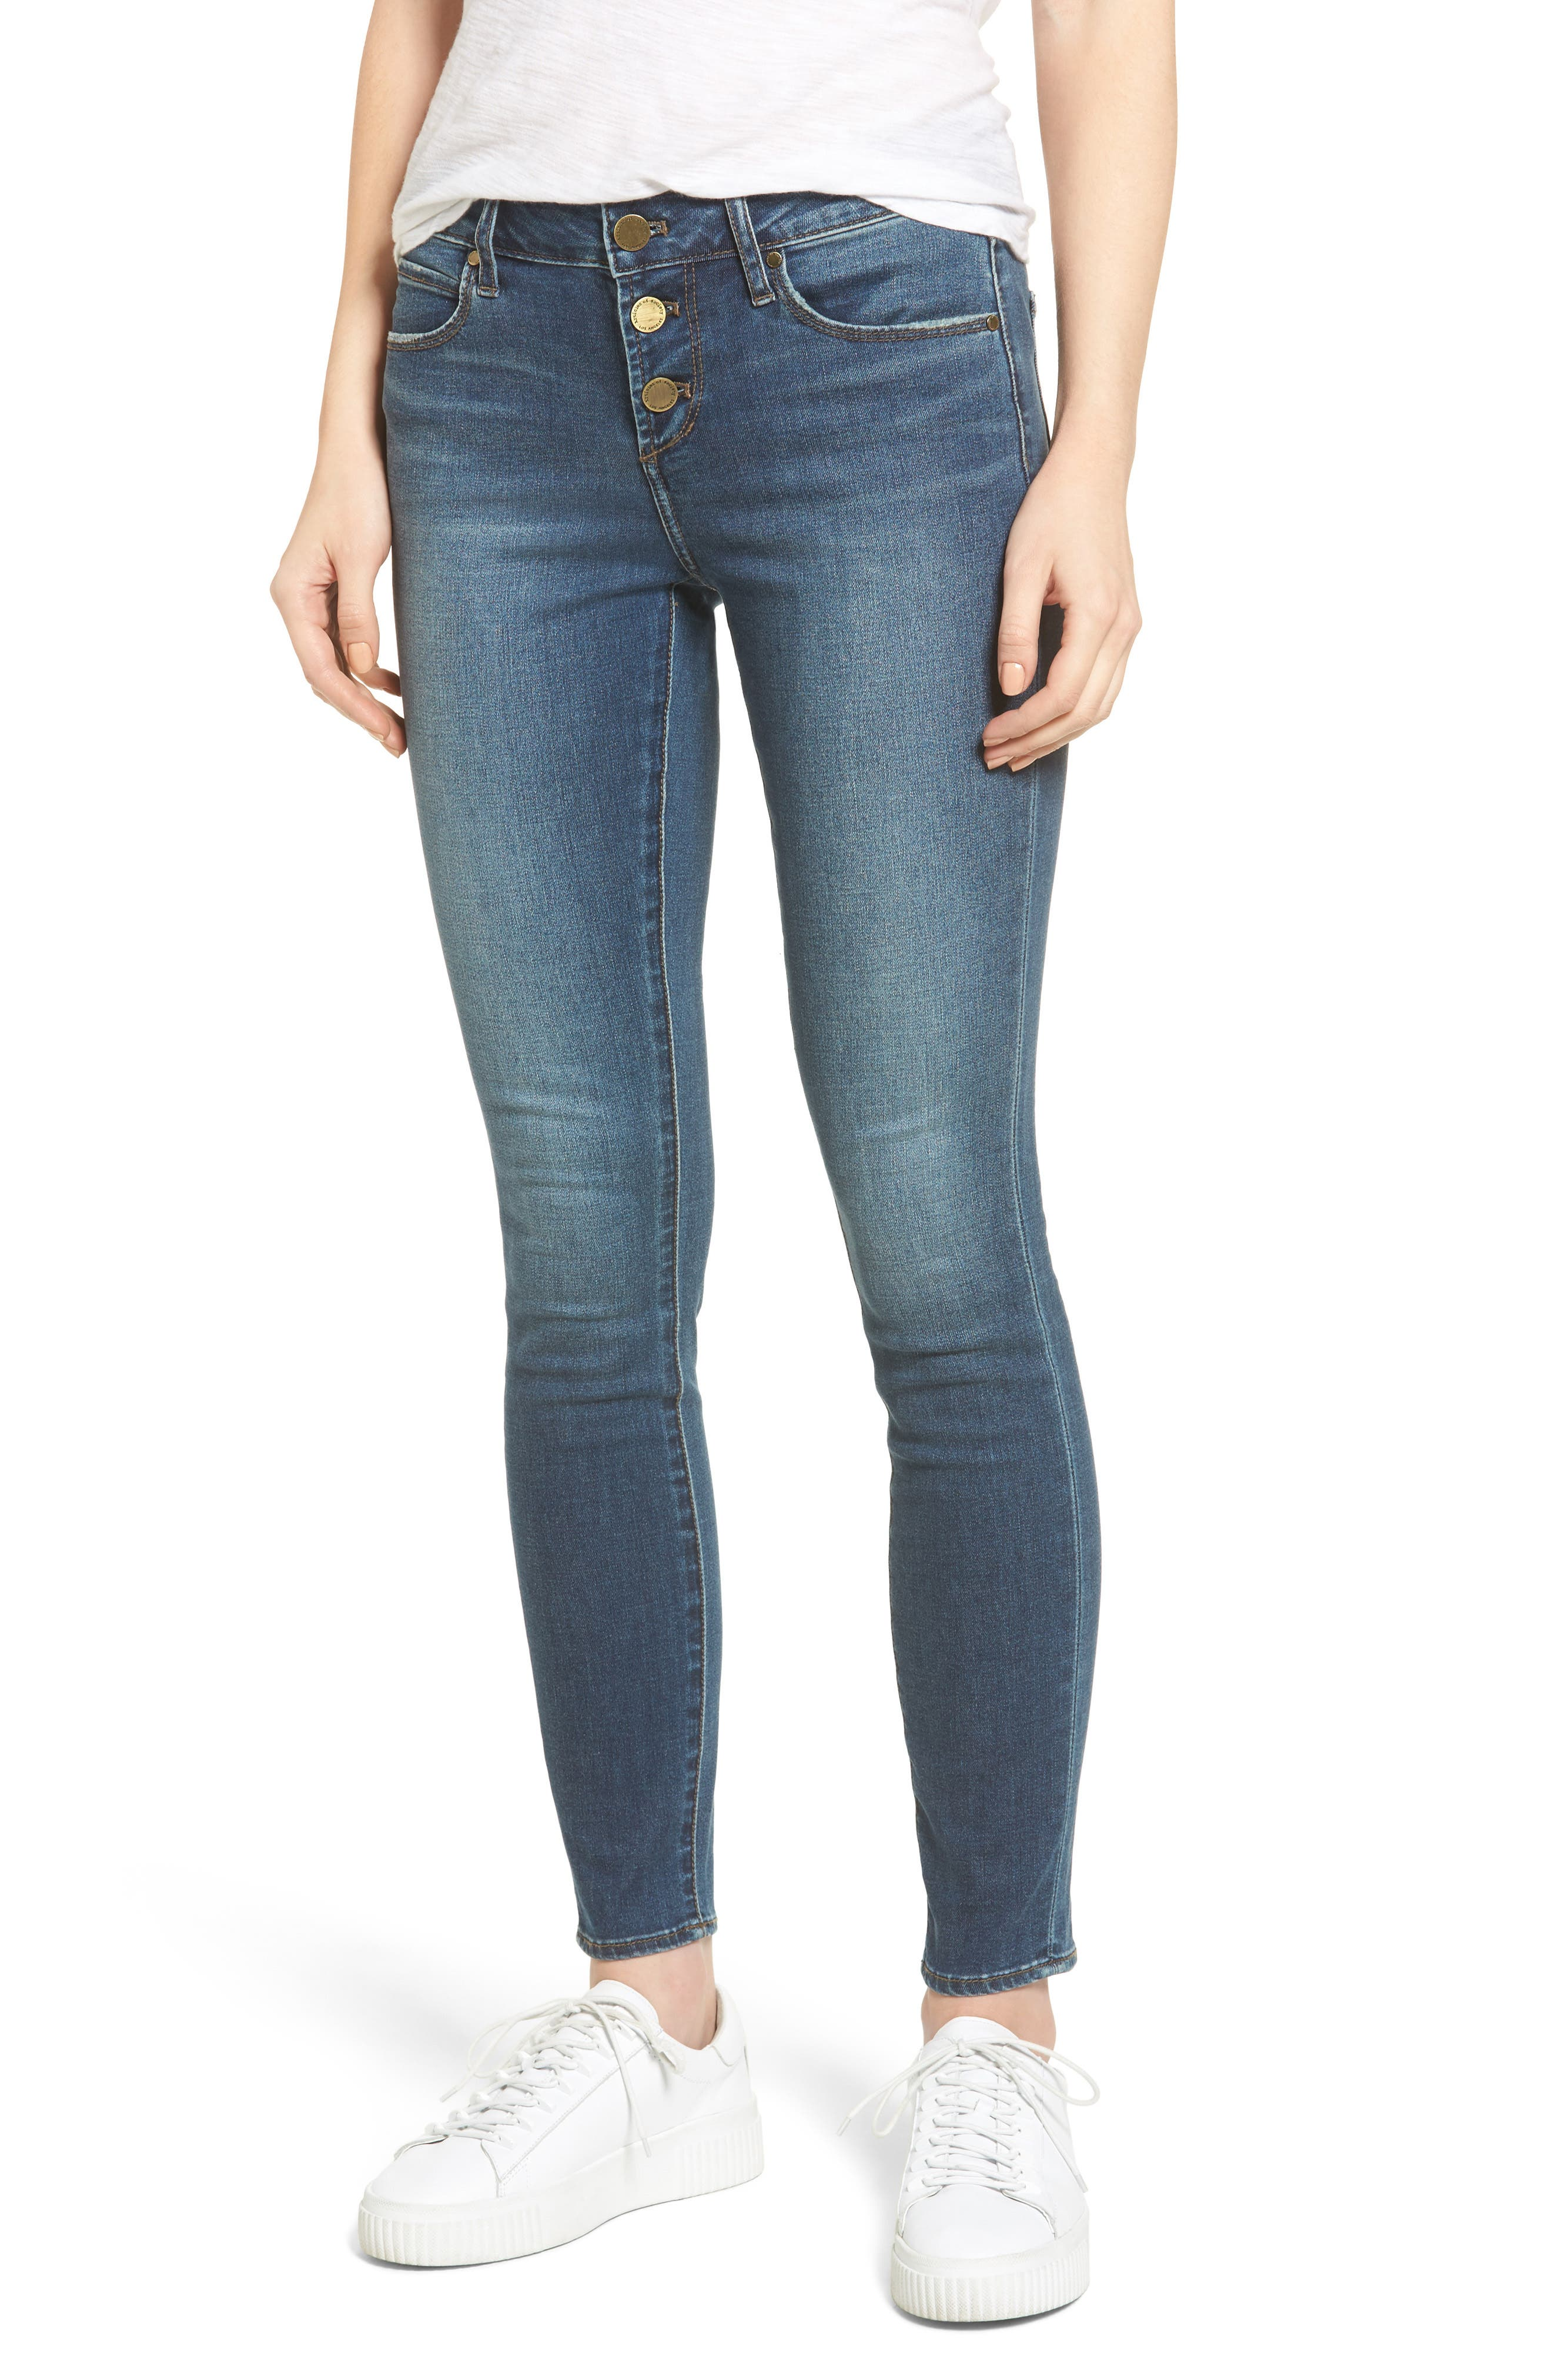 Articles of Society Britney Skinny Jeans (Harper)